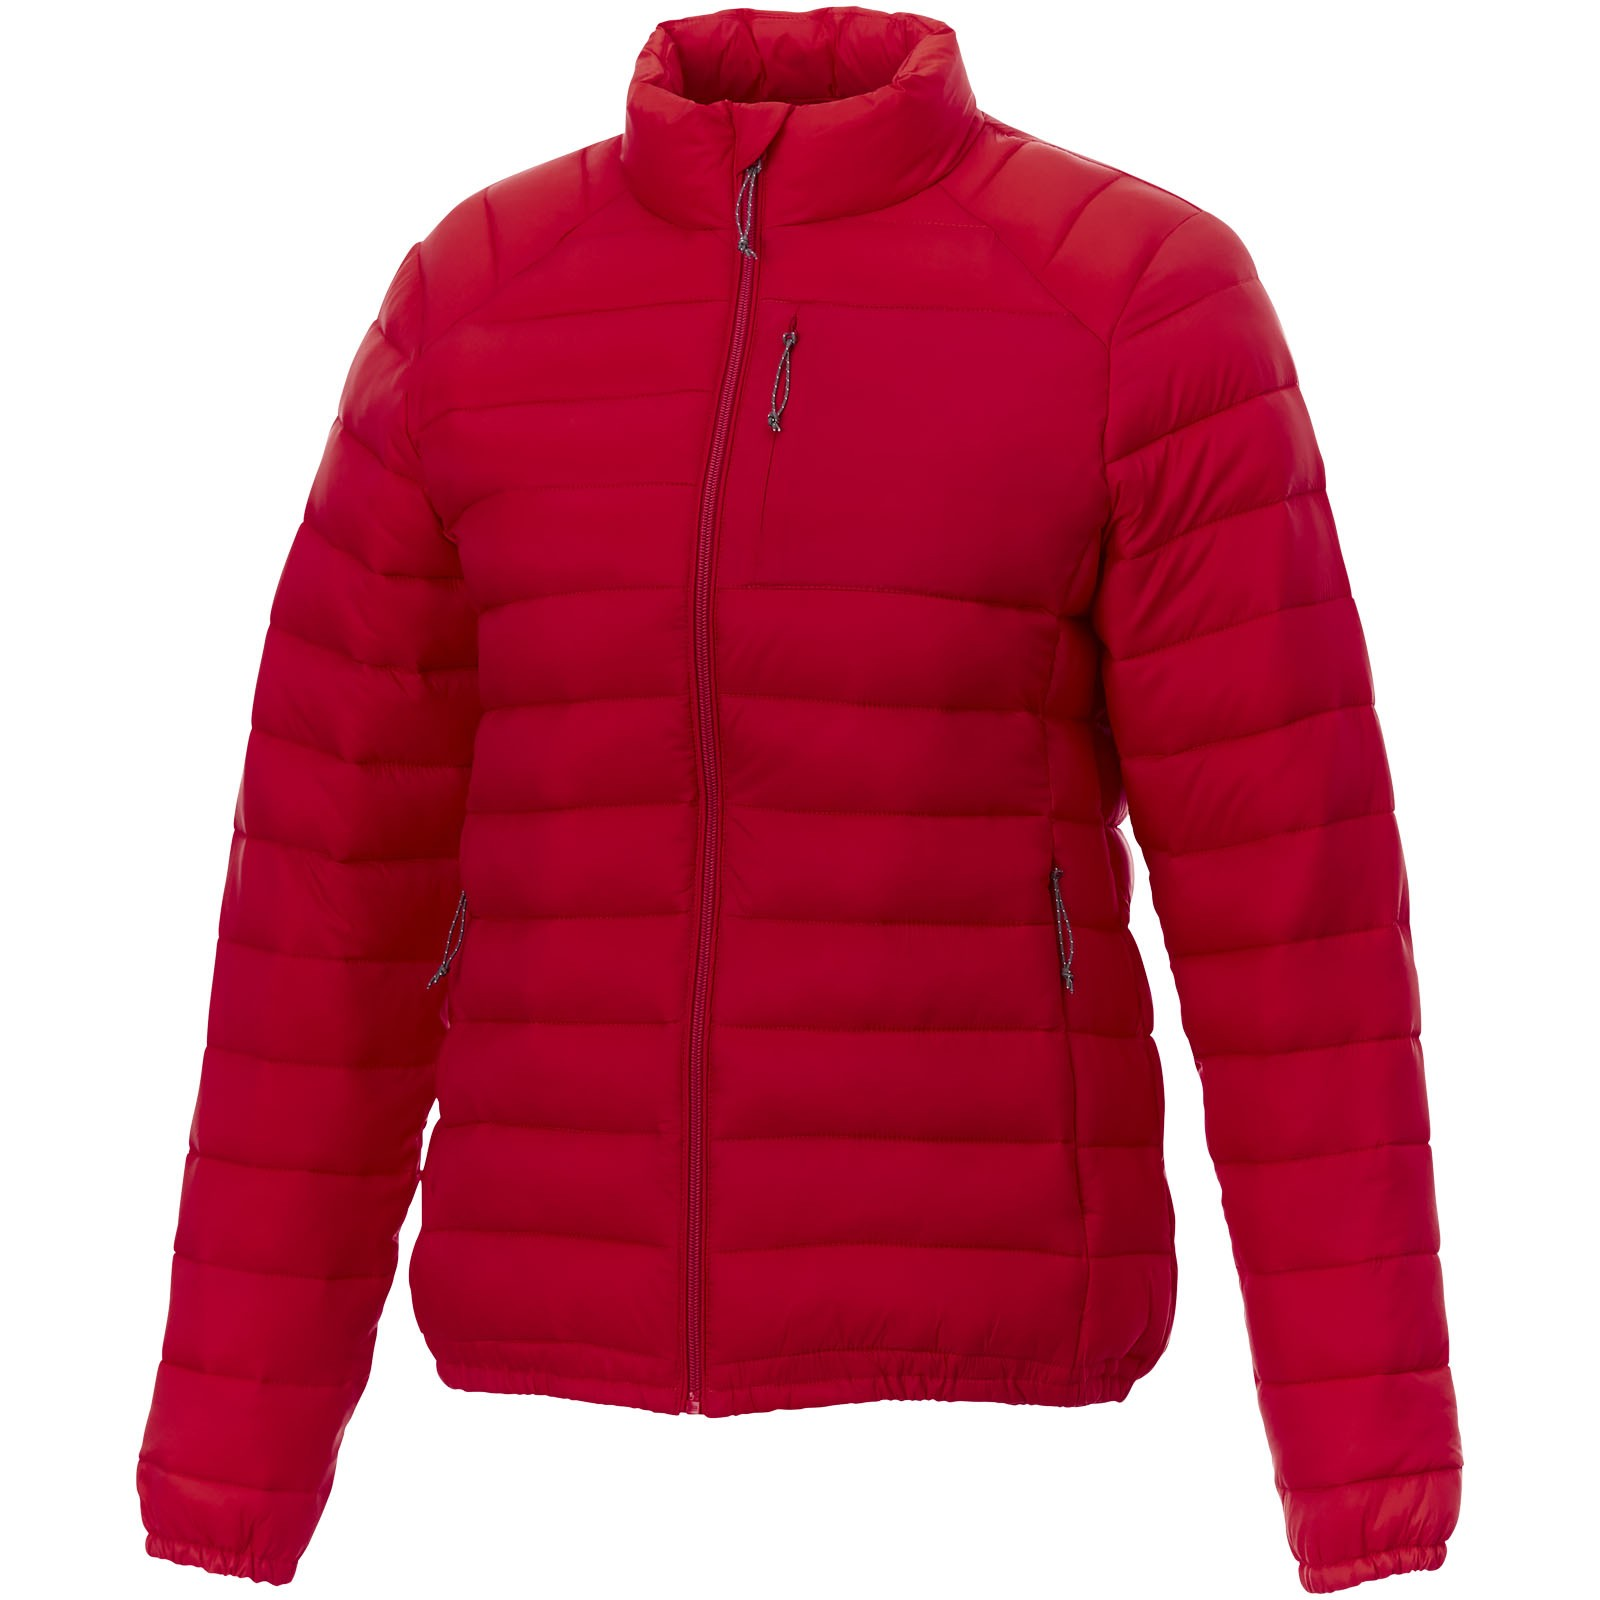 Athenas women's insulated jacket - Red / XL